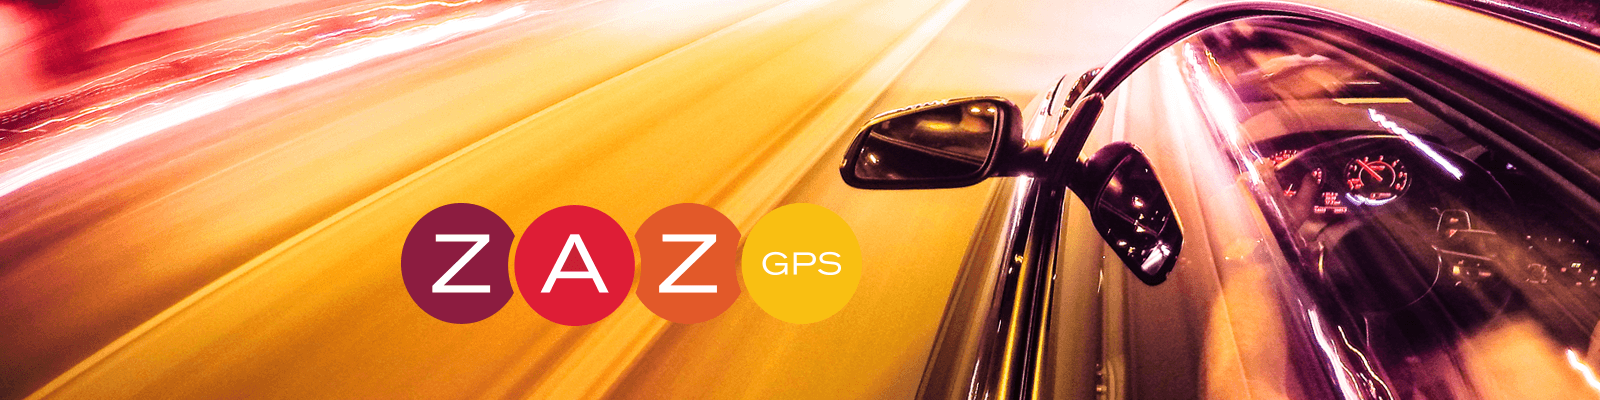 ZAZ GPS Stolen Vehicle Recovery - Connected Dealer Services